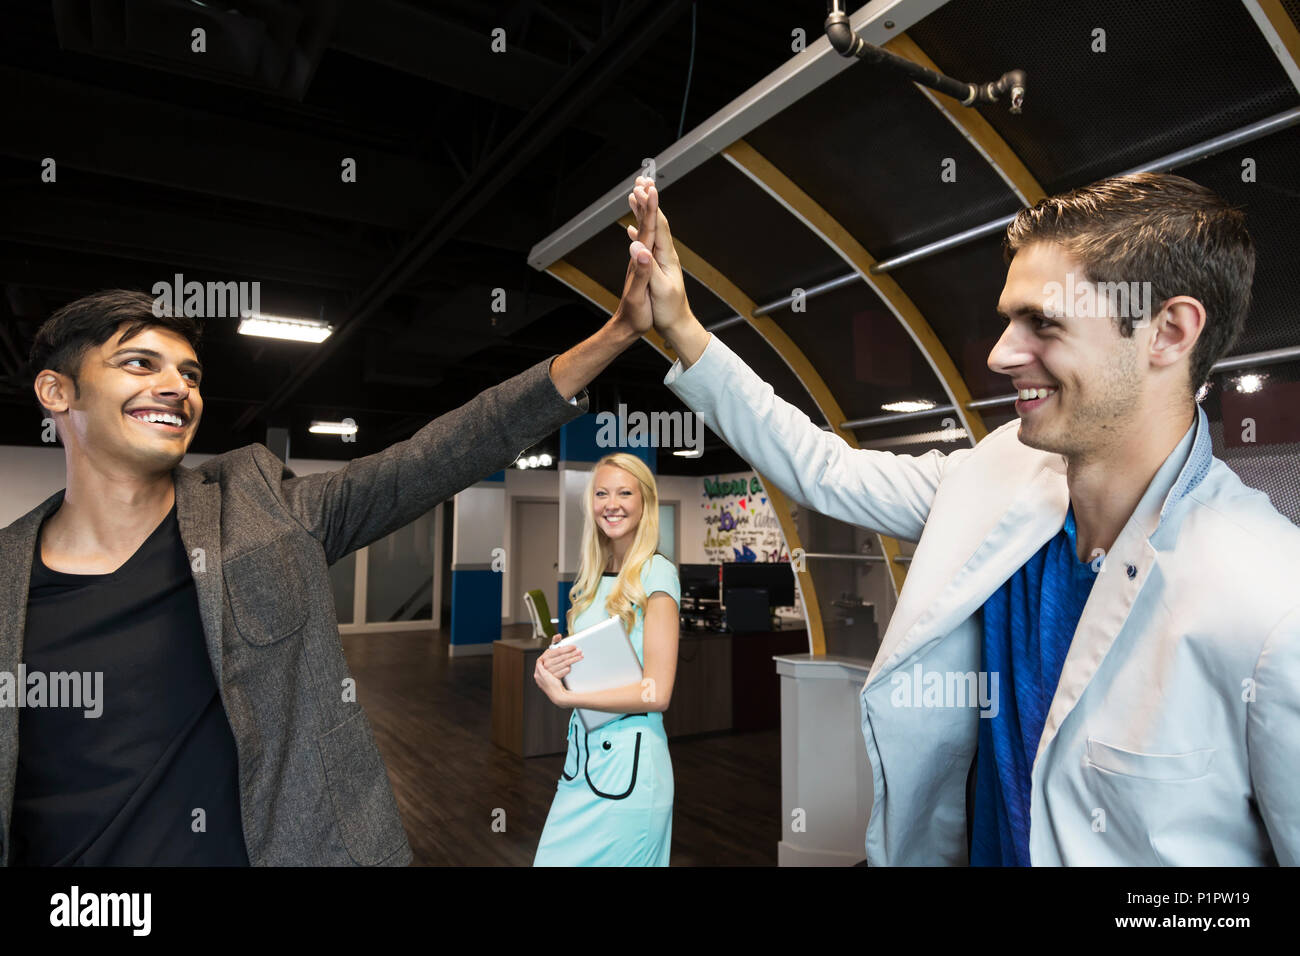 Young millennial business co-workers celebrating a success with a high-five in the workplace; Sherwood Park, Alberta, Canada - Stock Image